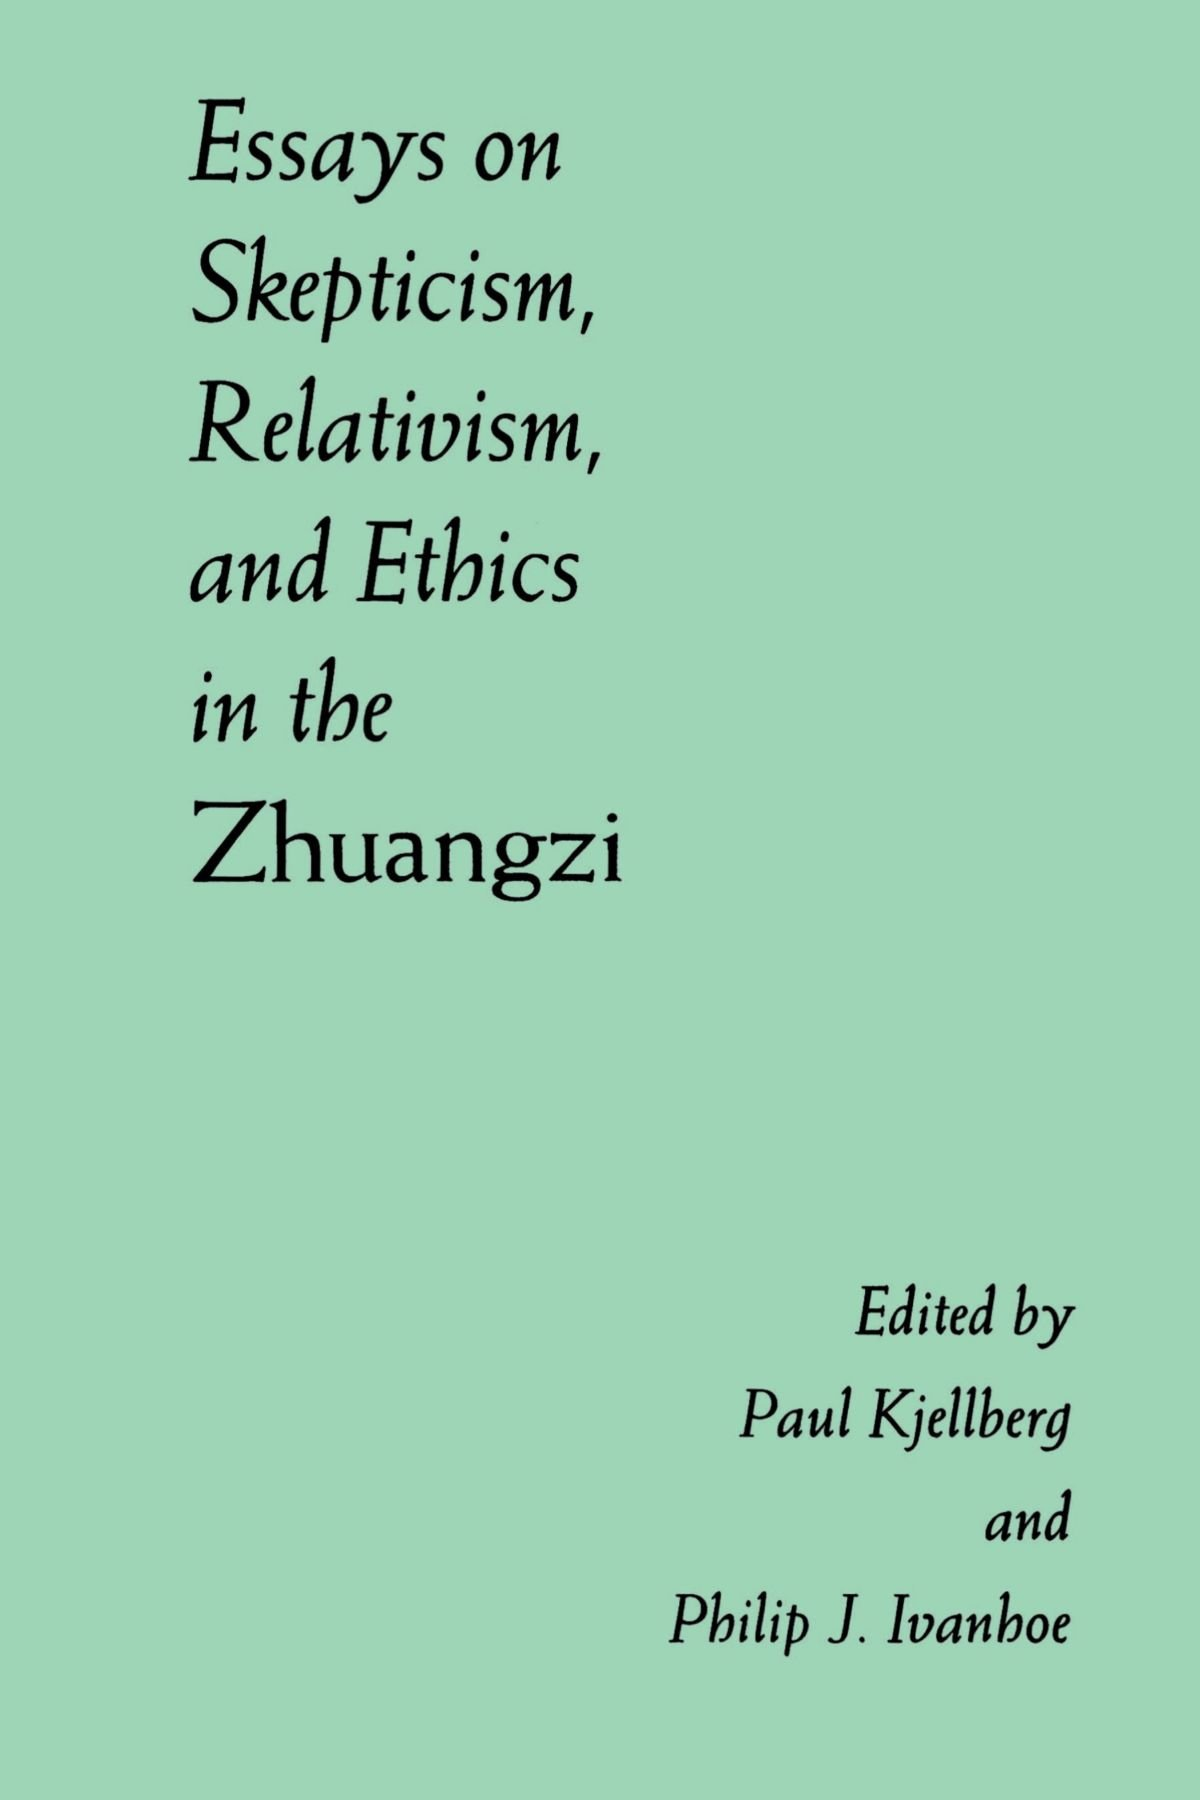 Egypt Essay Essays On Skepticism Relativism And Ethics In The Zhuangzi Suny Series  In Chinese Philosophy  Culture Suny Series In Chinese Philosophy And  Culture  Essay On Being Honest also Essay On Self Help Is The Best Help Essays On Skepticism Relativism And Ethics In The Zhuangzi Suny  English Essay Writing Examples